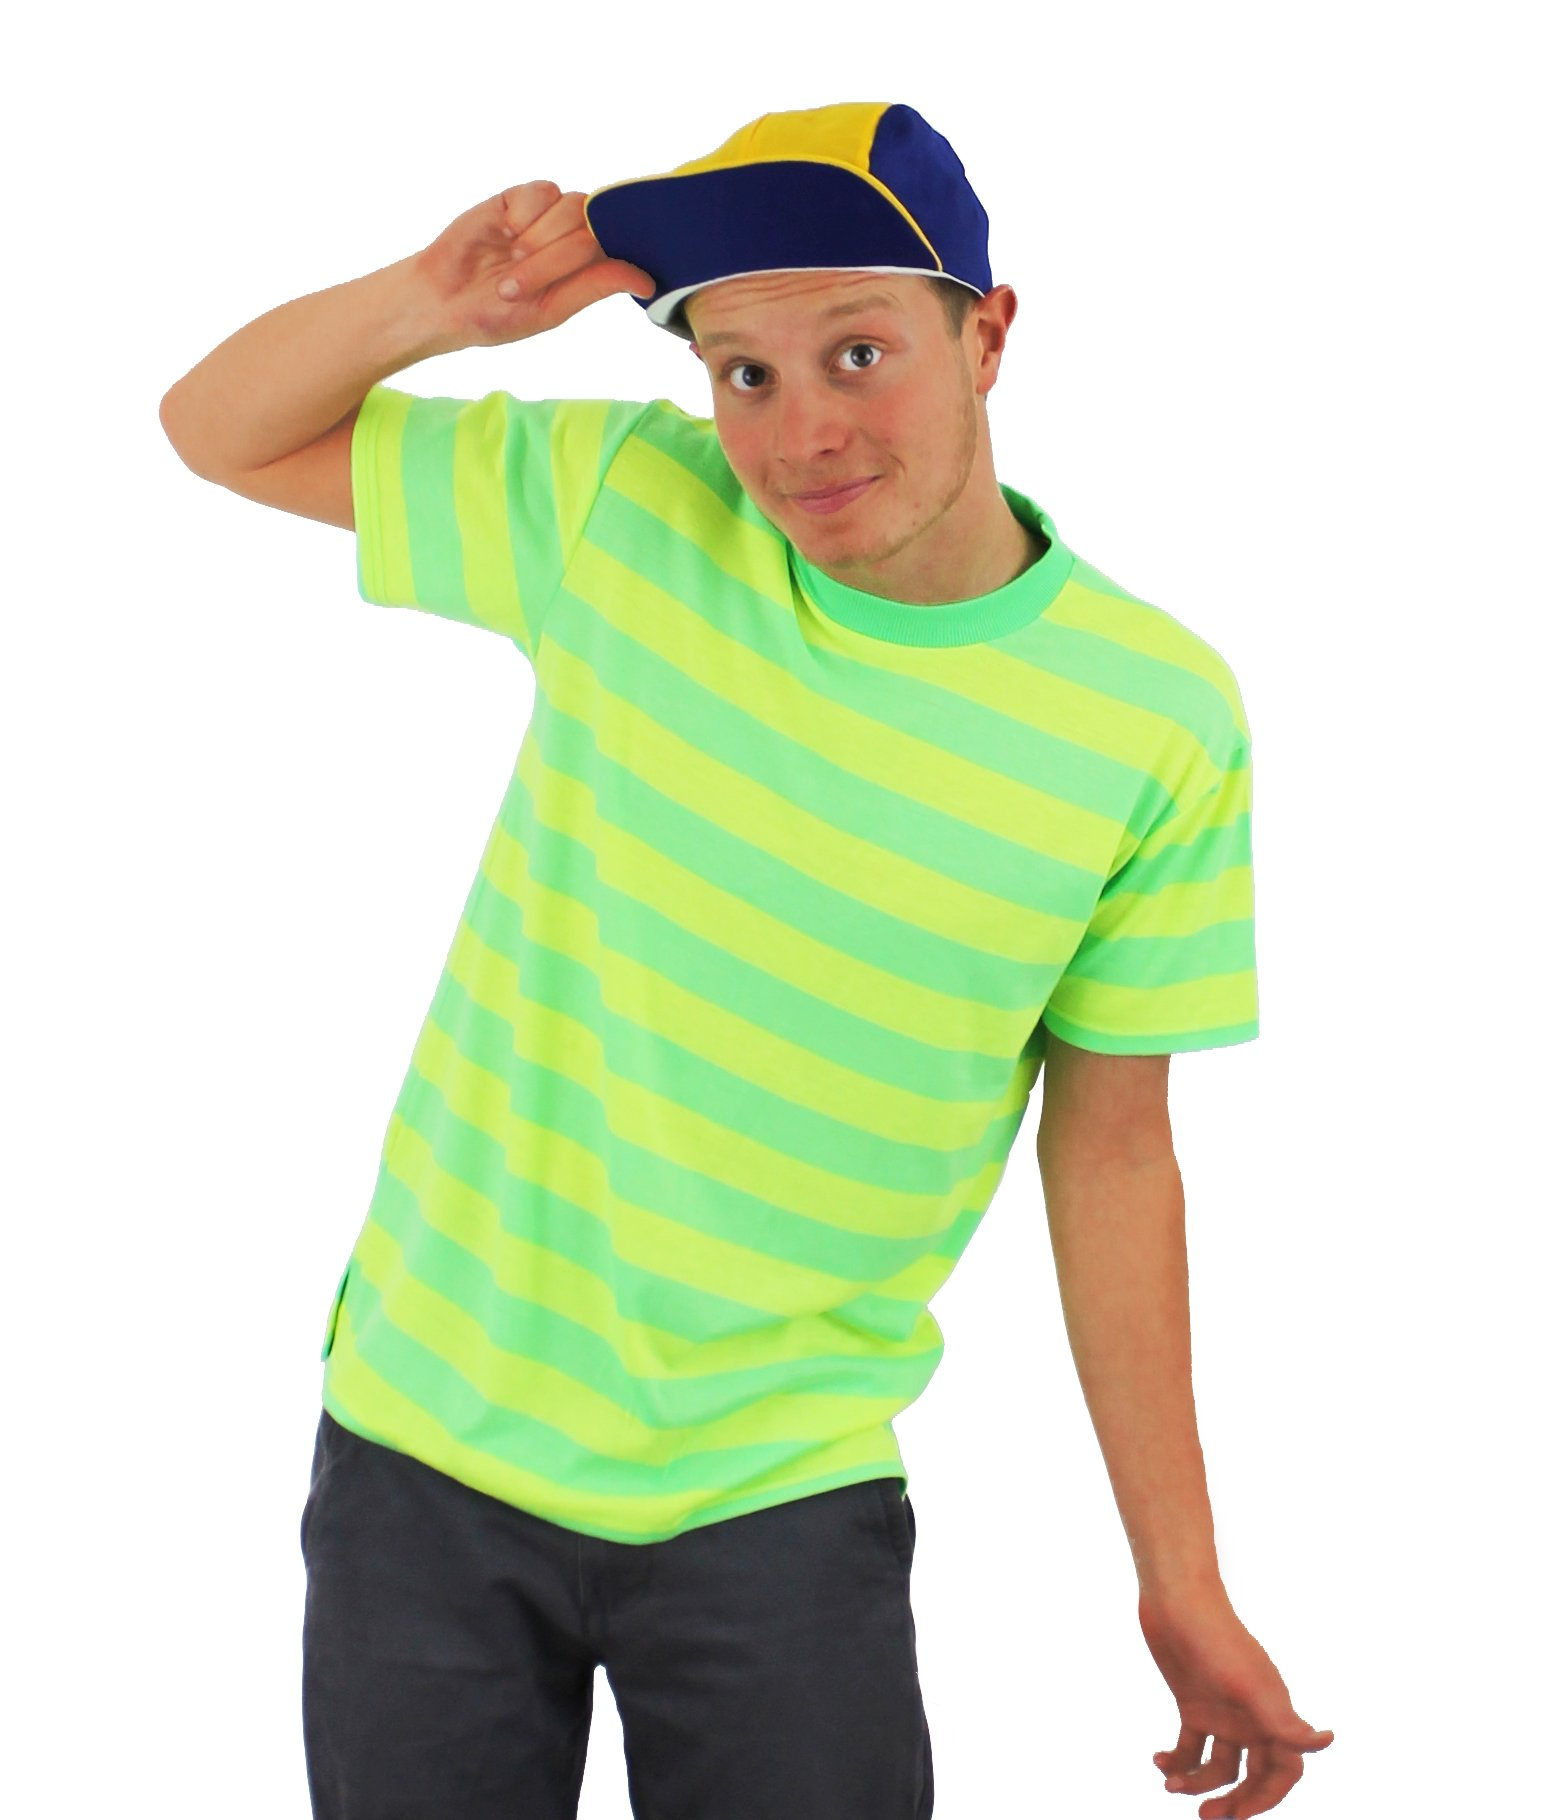 ILOVEFANCYDRESS Bel Air Prince Costume 90s Fancy Dress Retro 1990s TV Character - Size XLarge